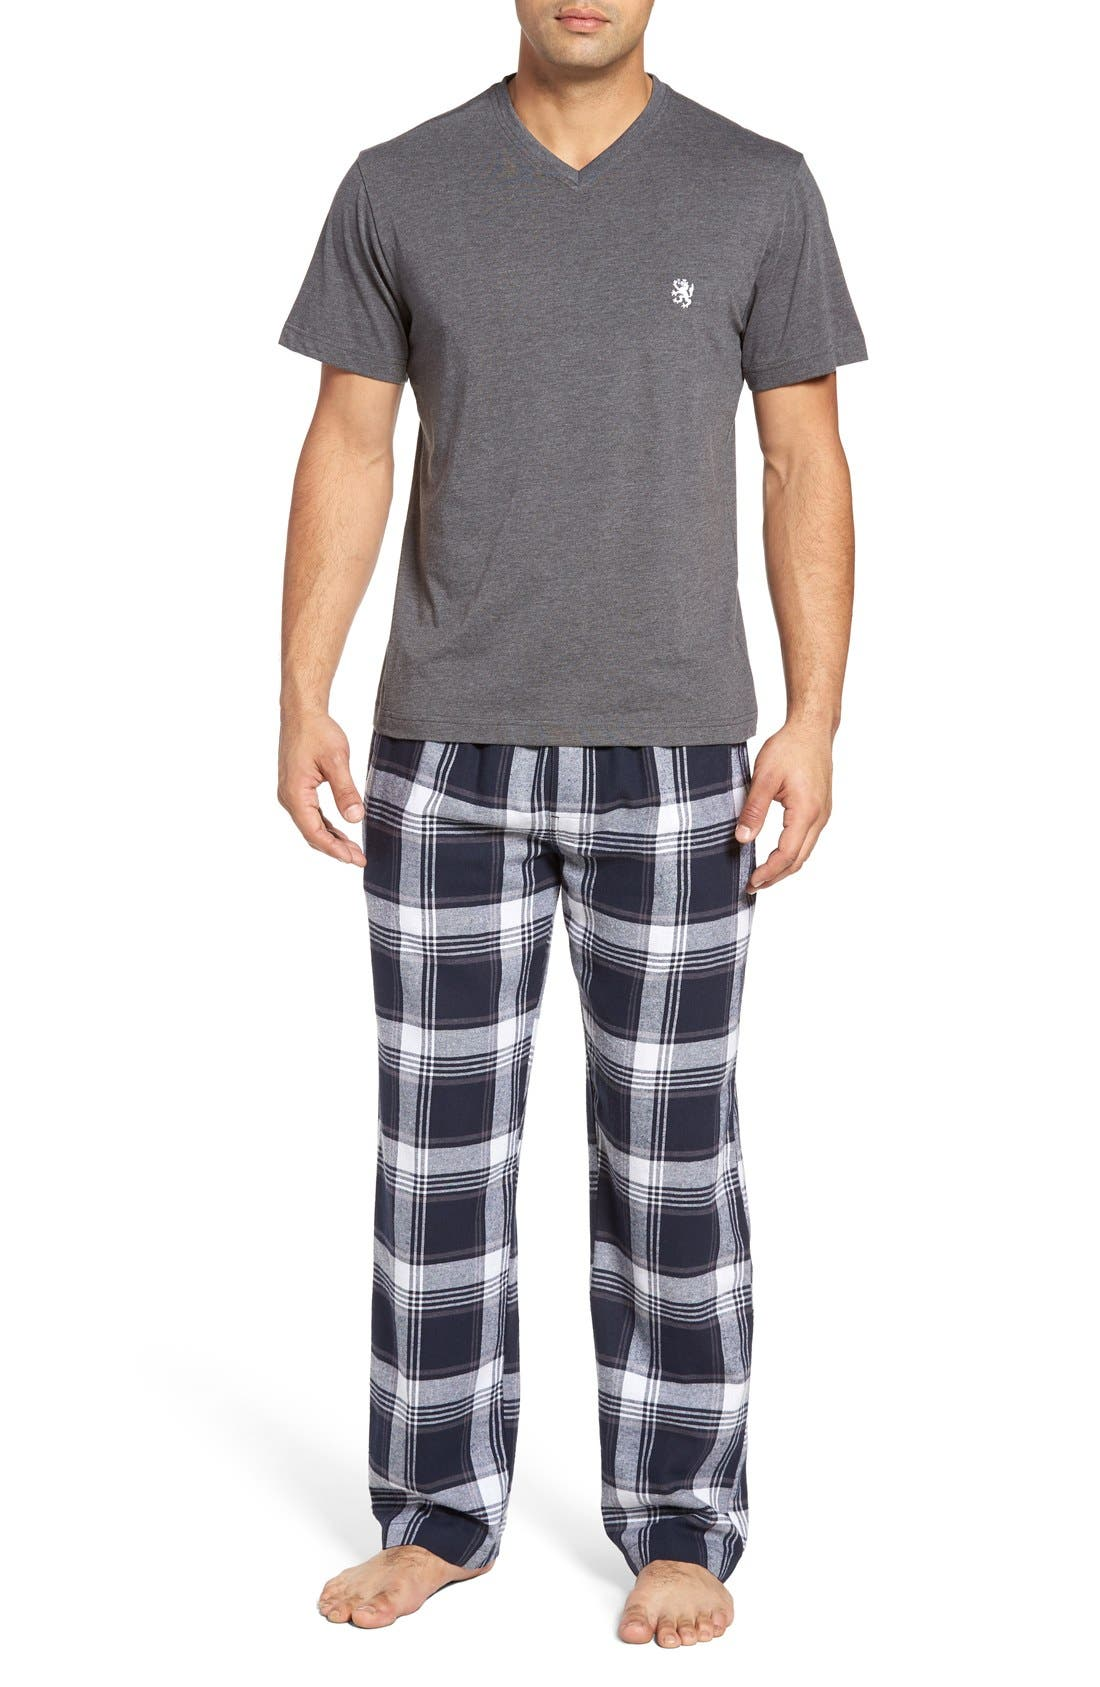 Majestic International T-Shirt & Lounge Pants